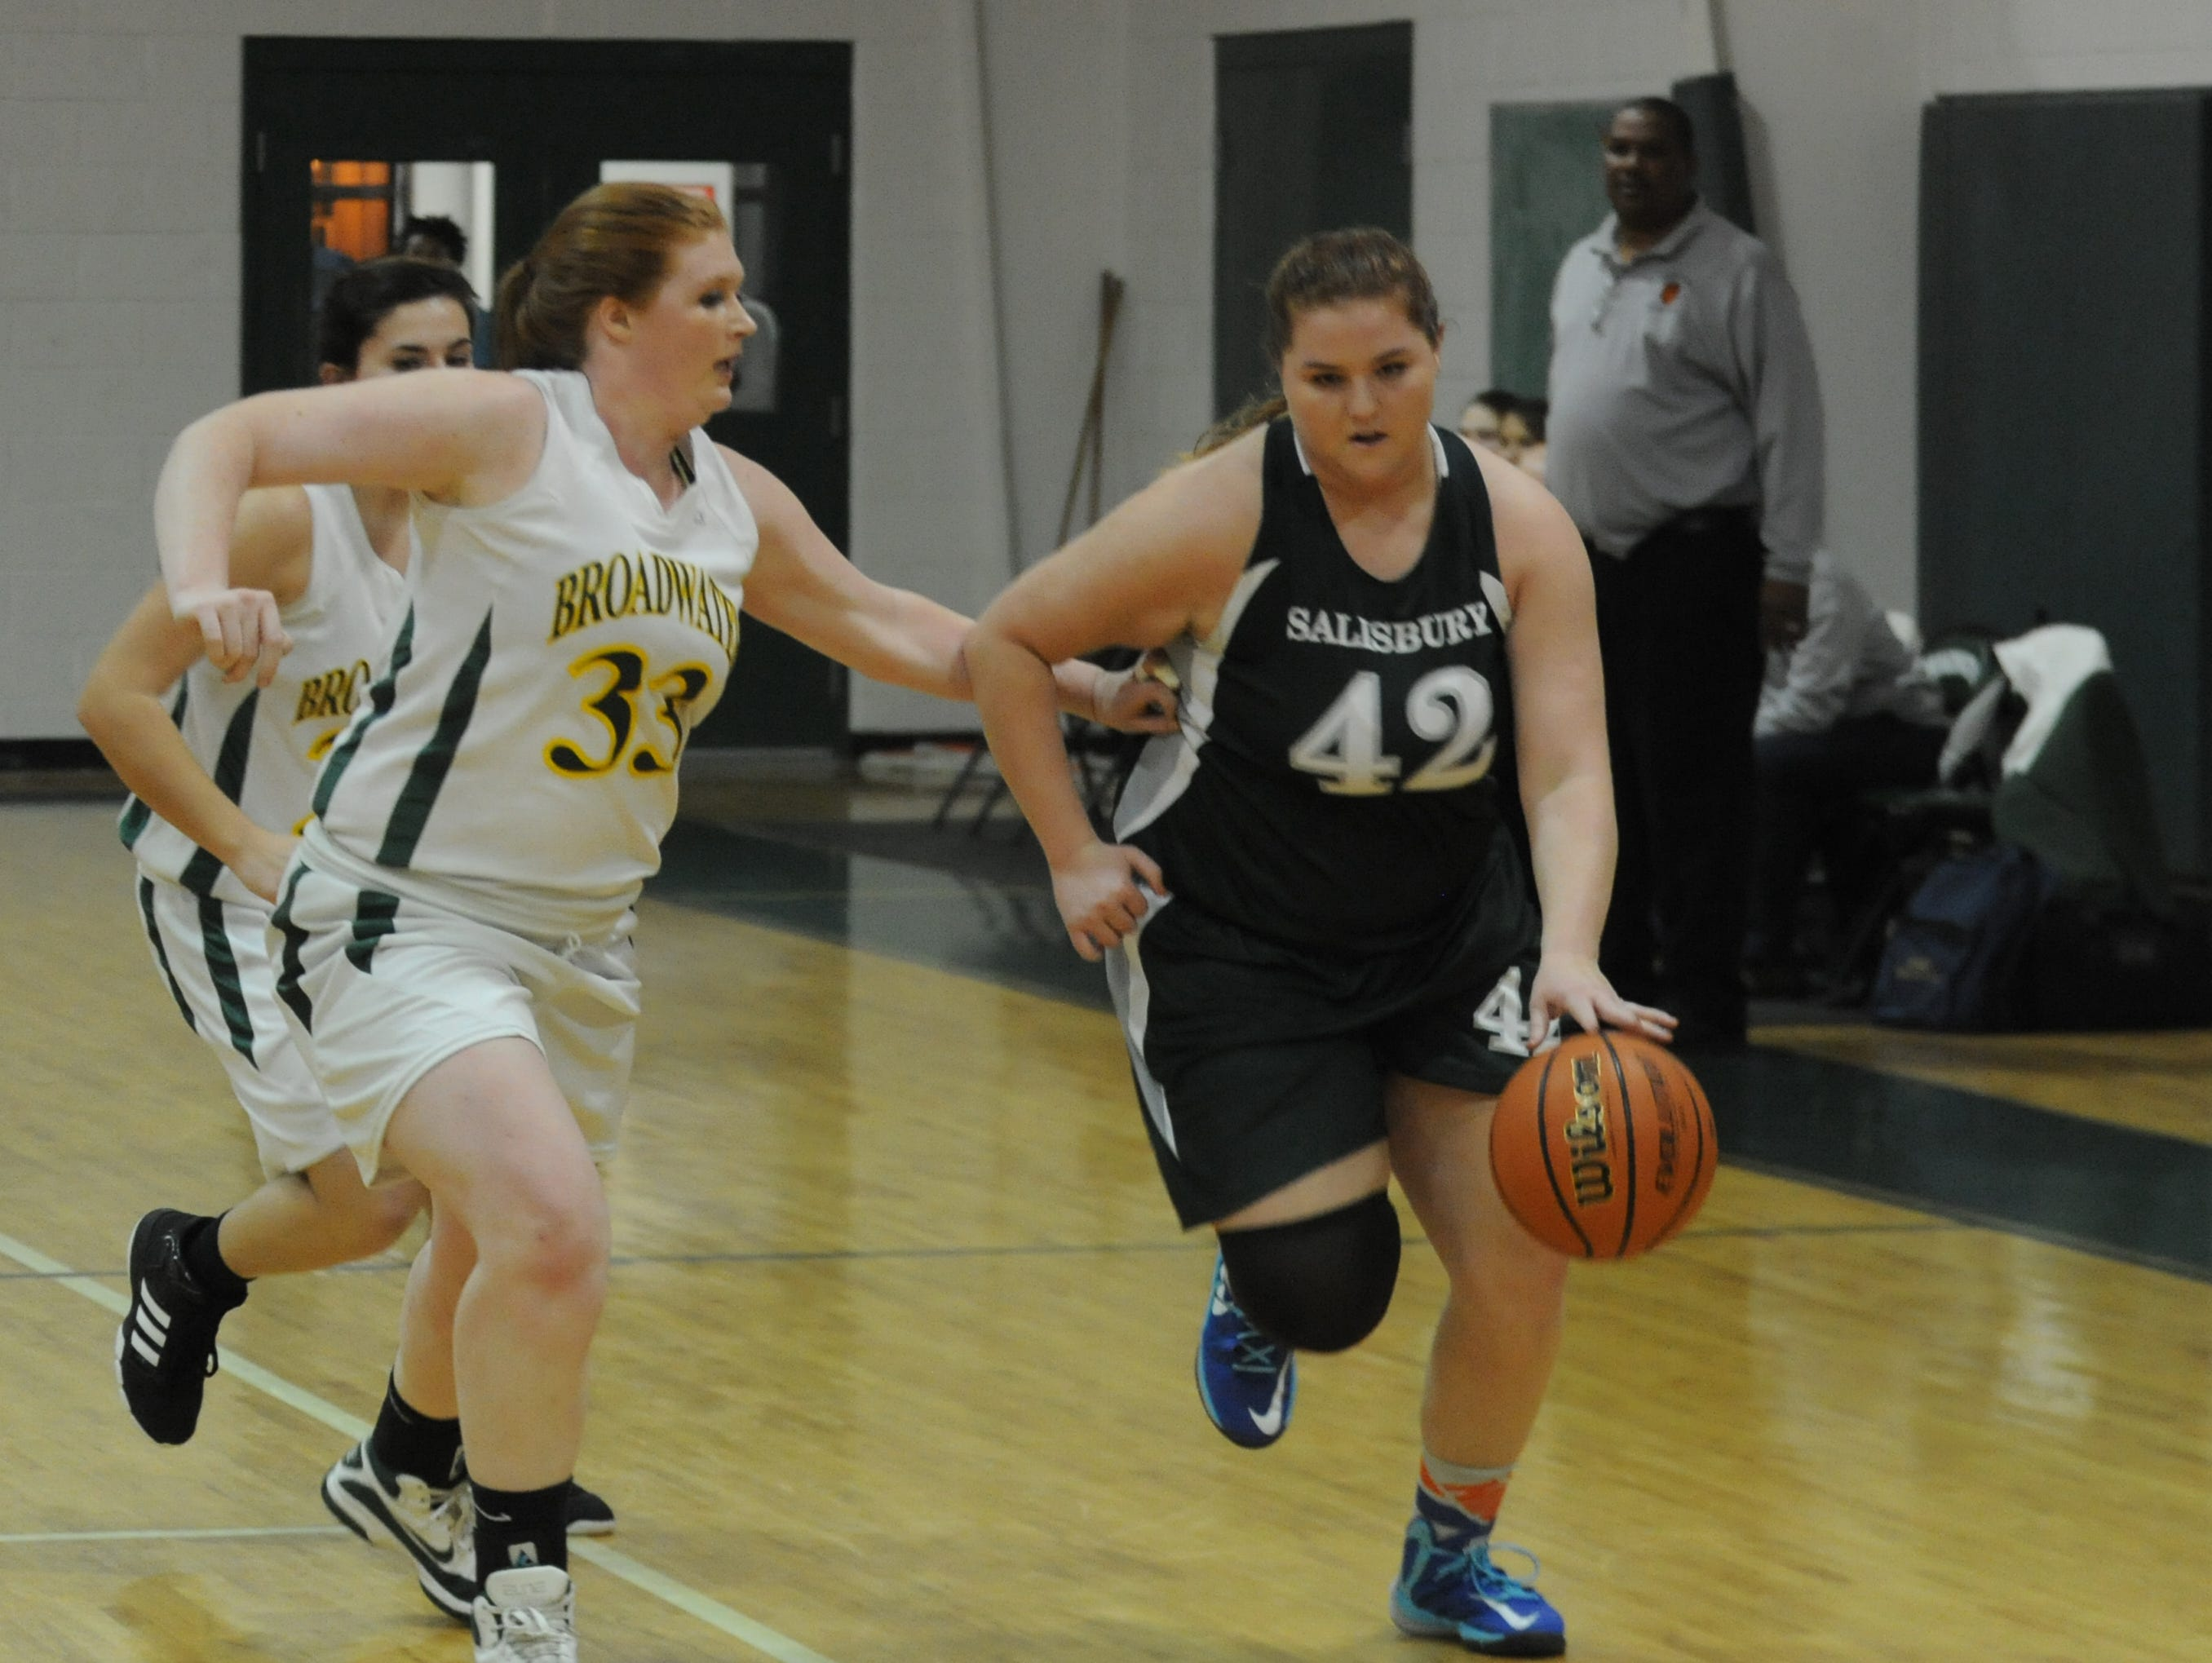 STAT OF THE WEEK: Salisbury School's Morgan McCabe averaged 16 points in two games for the Dragons on Friday and Monday. McCabe led her team to a 36-27 win over Gunston day last Friday.